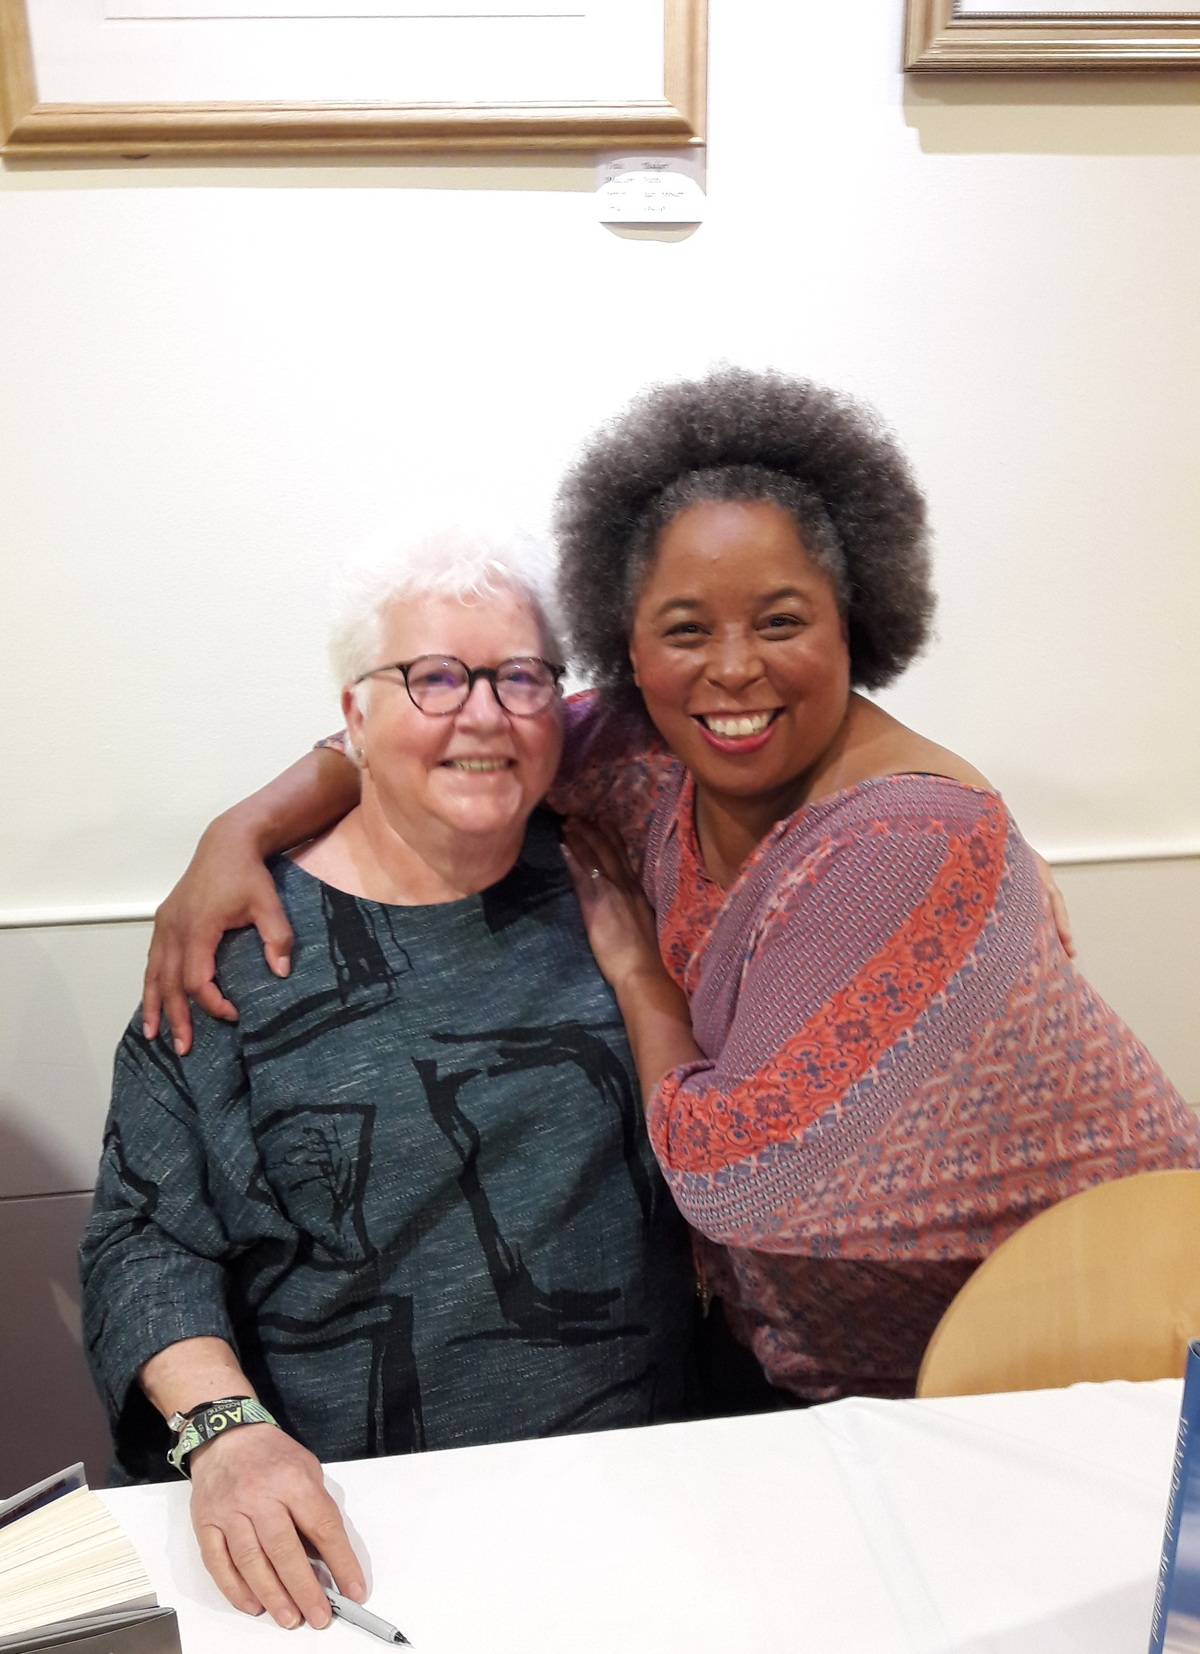 Power of Music 3 - Val McDermid